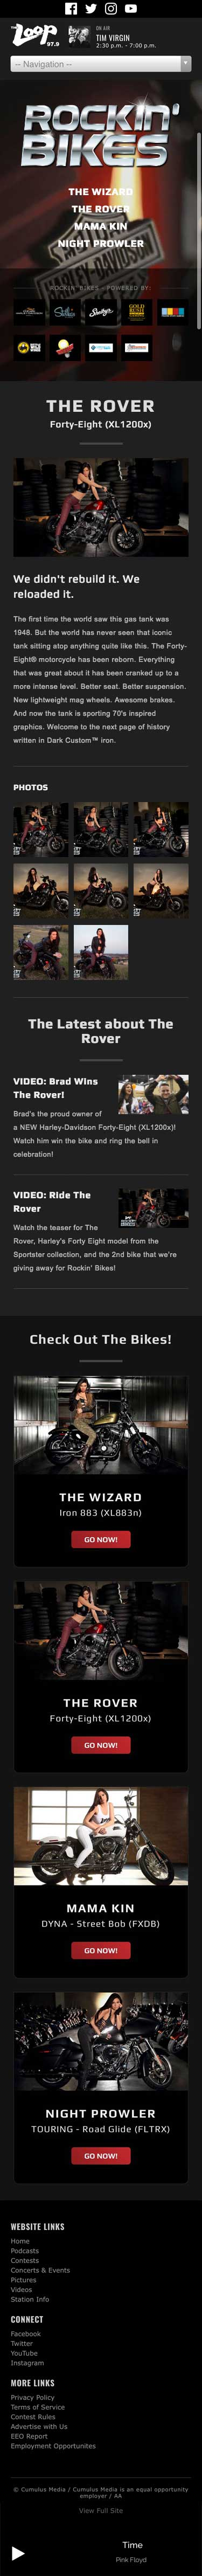 Rockin' Bikes - The Rover Page - iPhone View